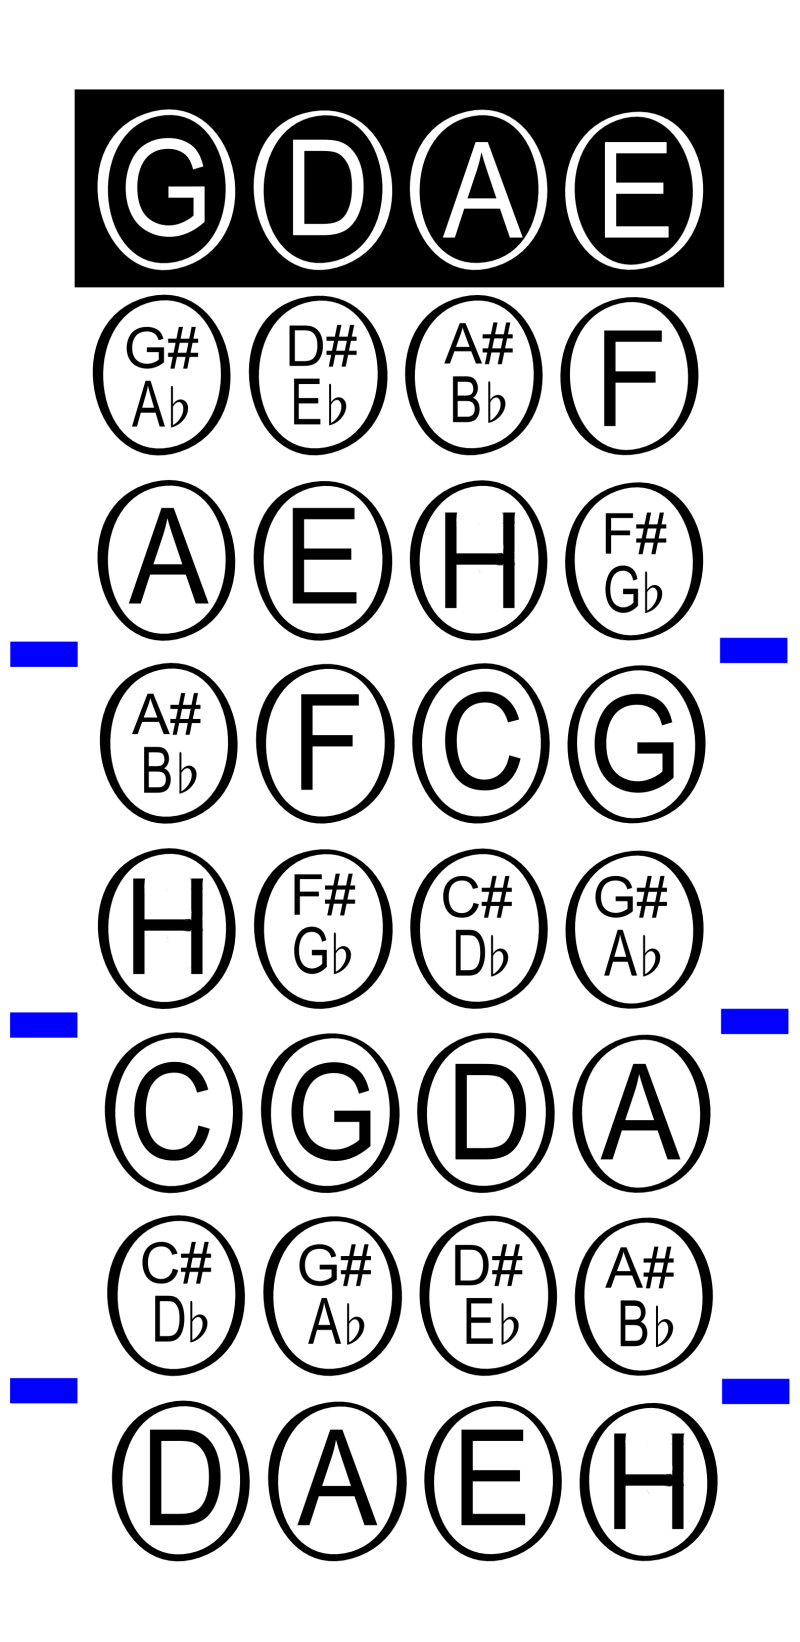 File:Violin first position fingering chart de.png - Wikimedia Commons